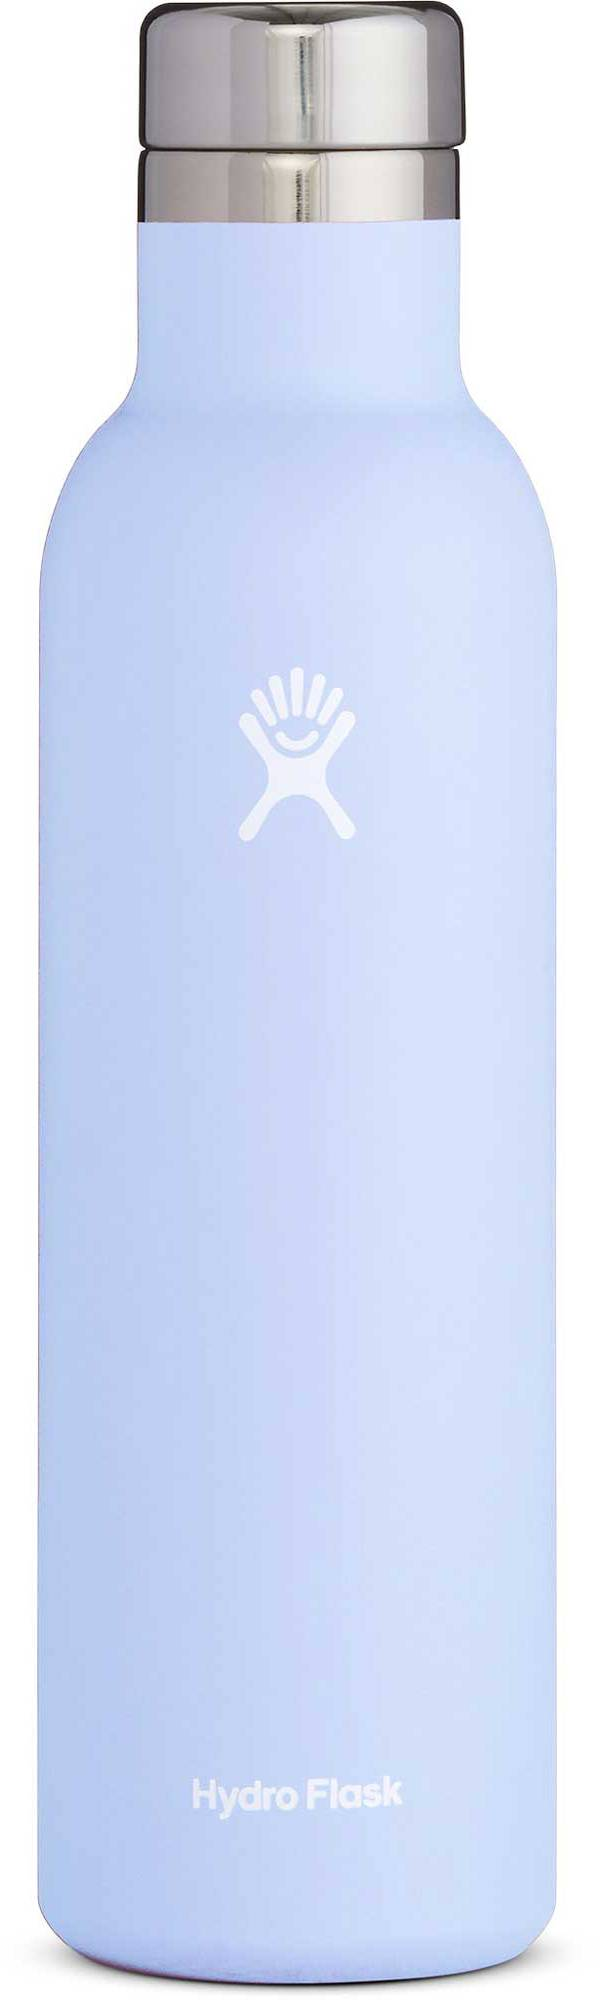 Hydro Flask 25 oz Wine Bottle product image